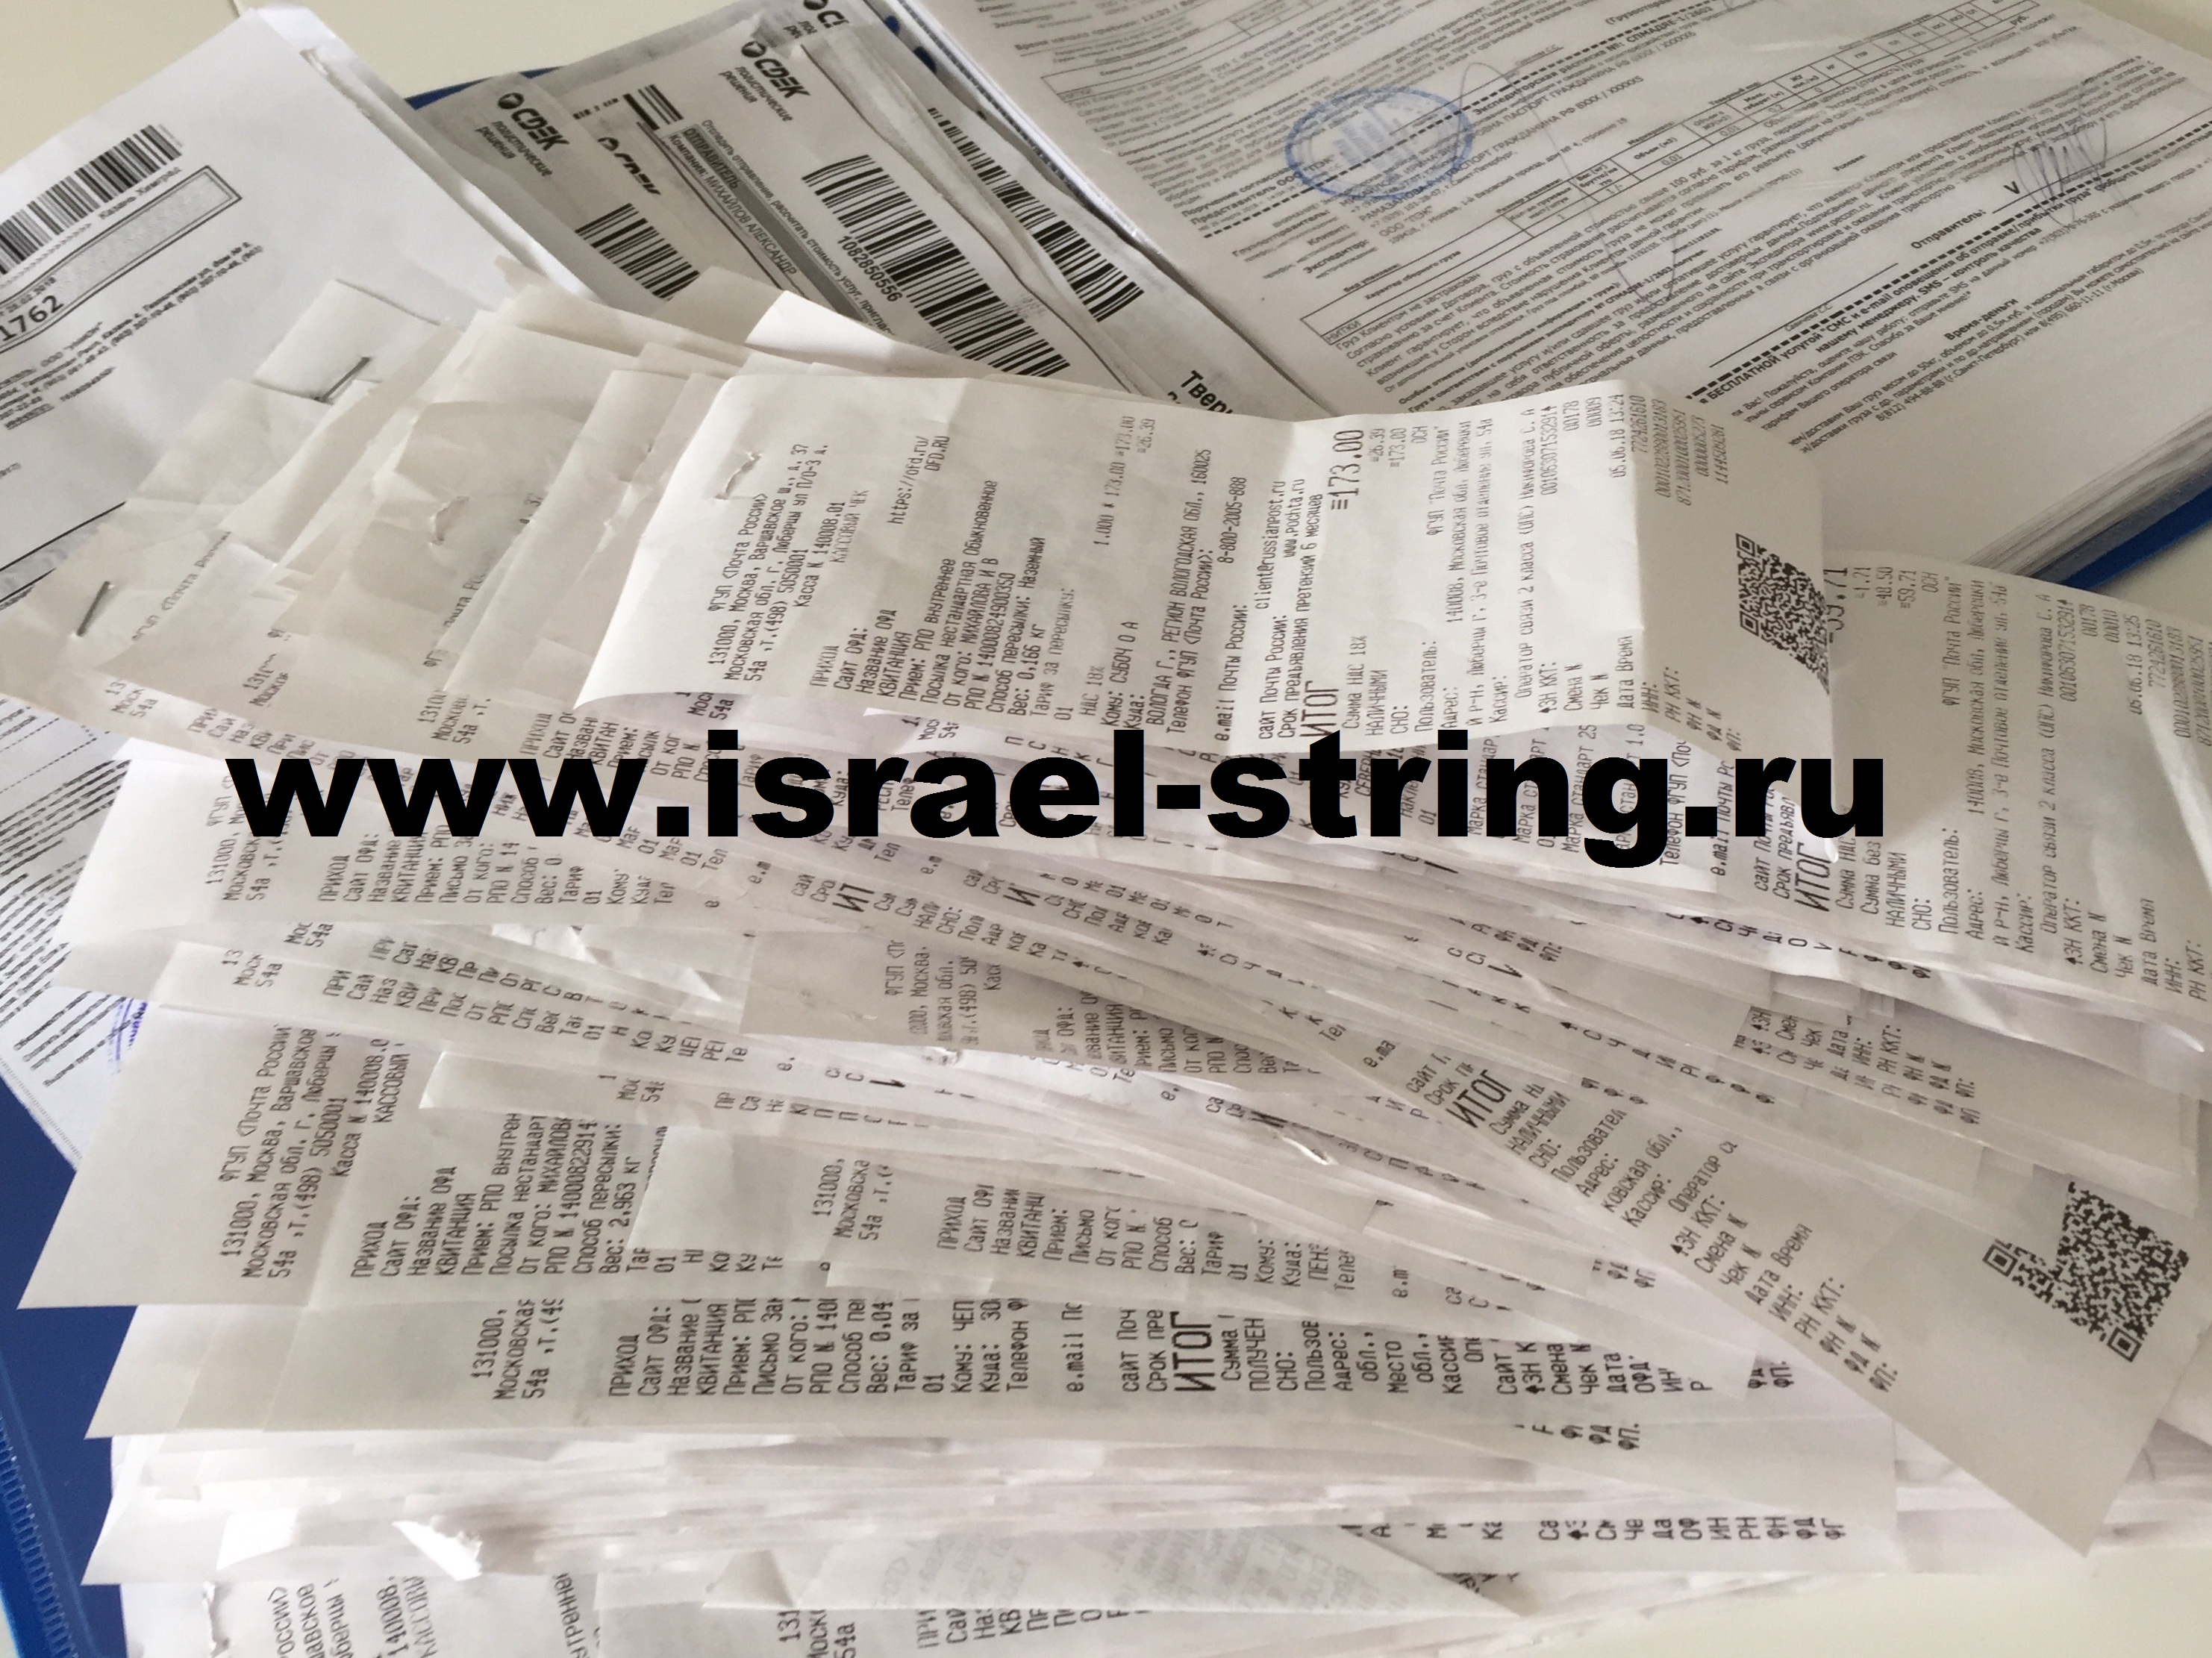 http://israel-string.ru/images/upload/FullSizeRender7.jpg